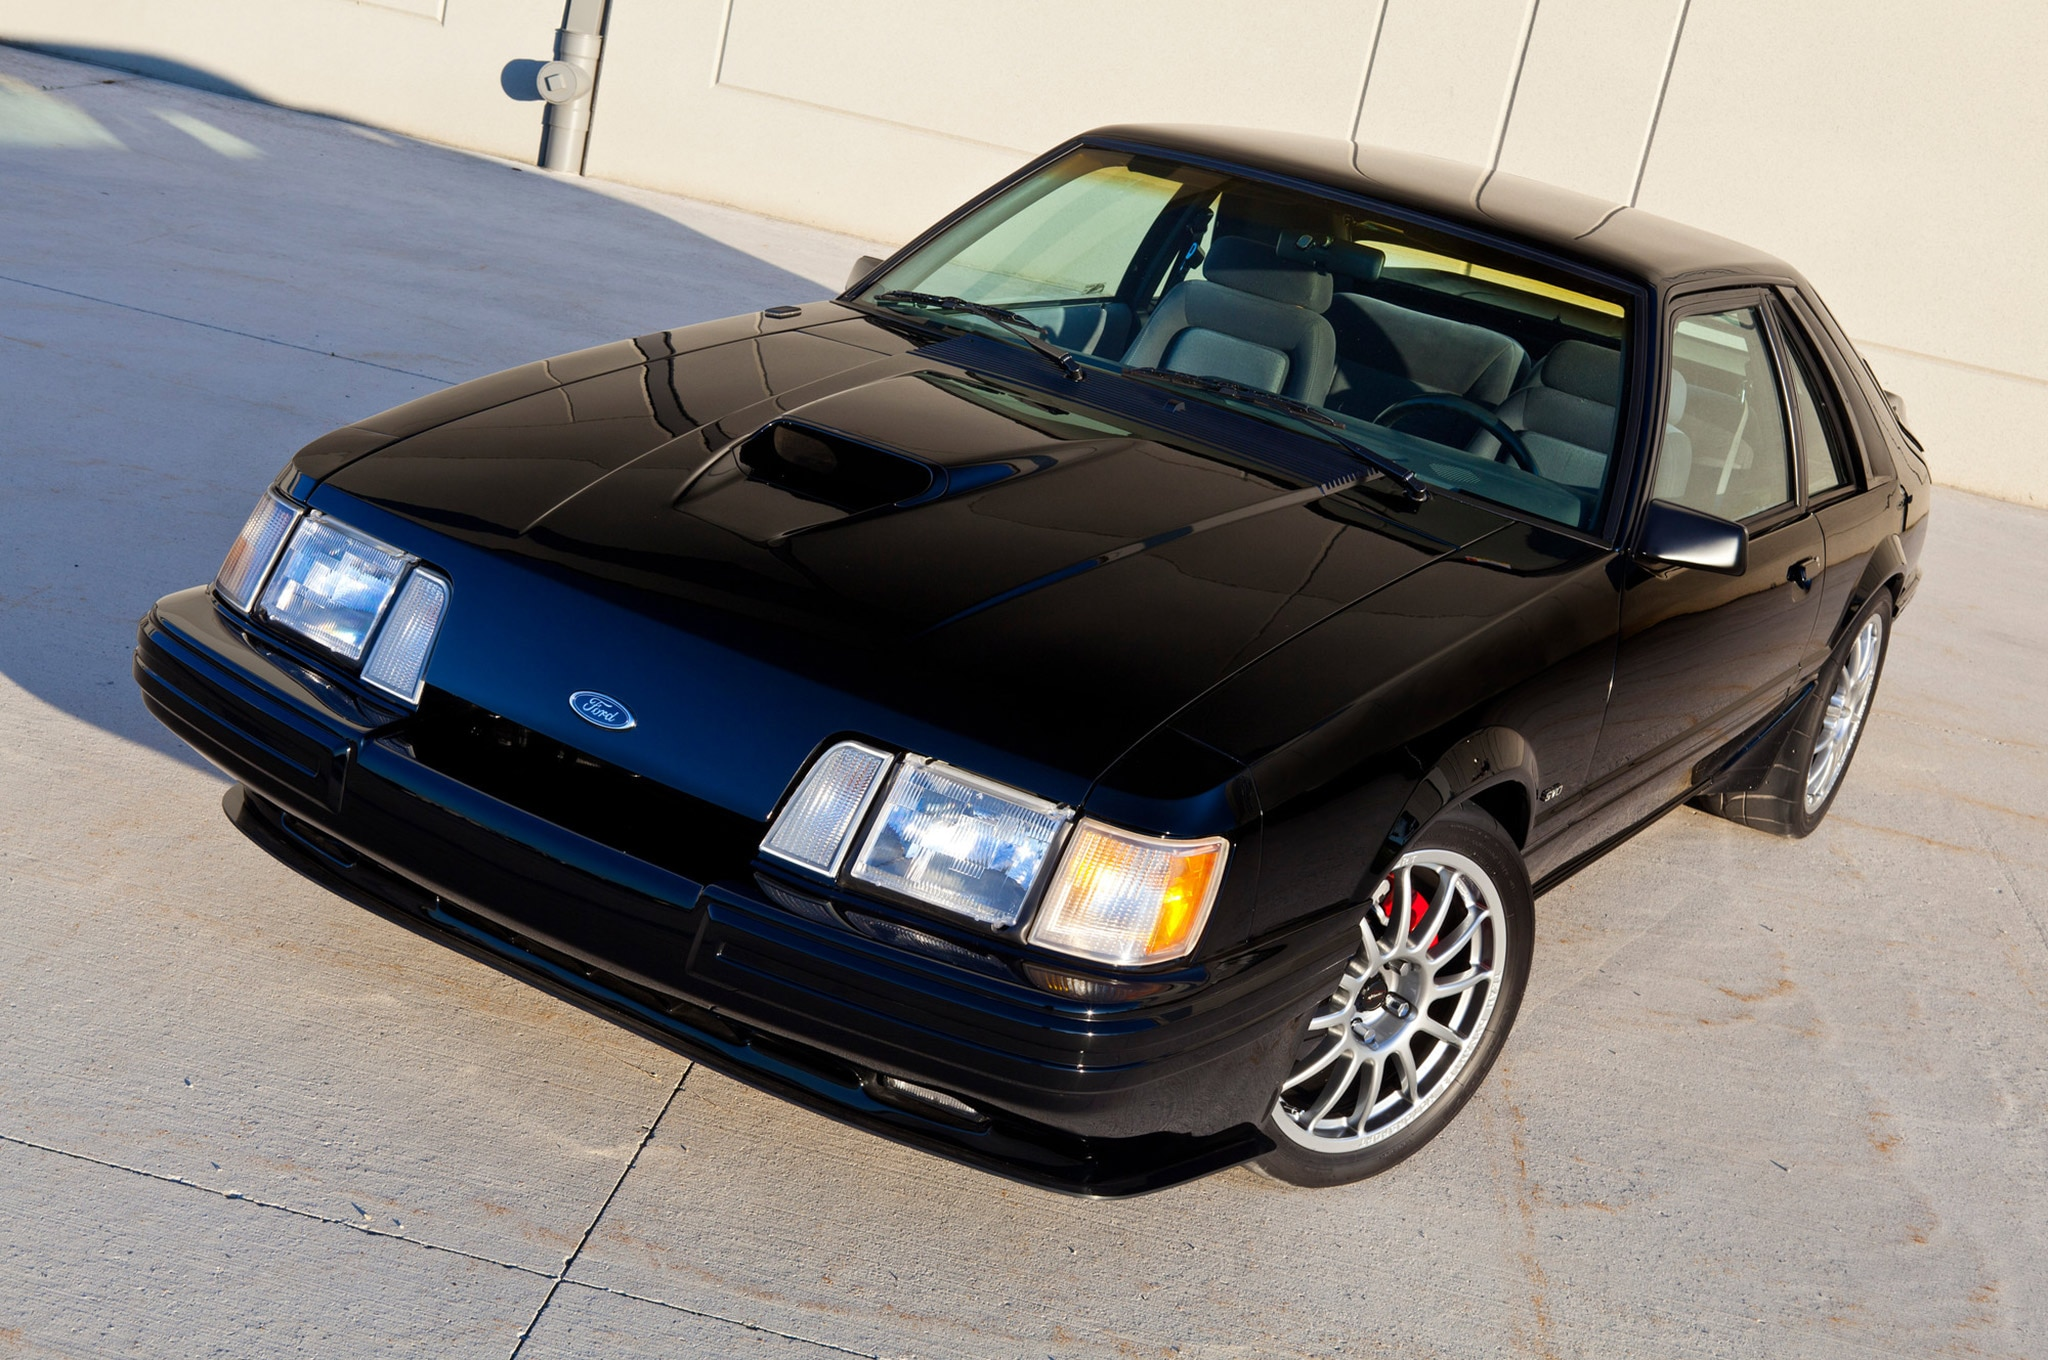 1986 Ford Mustang Svo 19